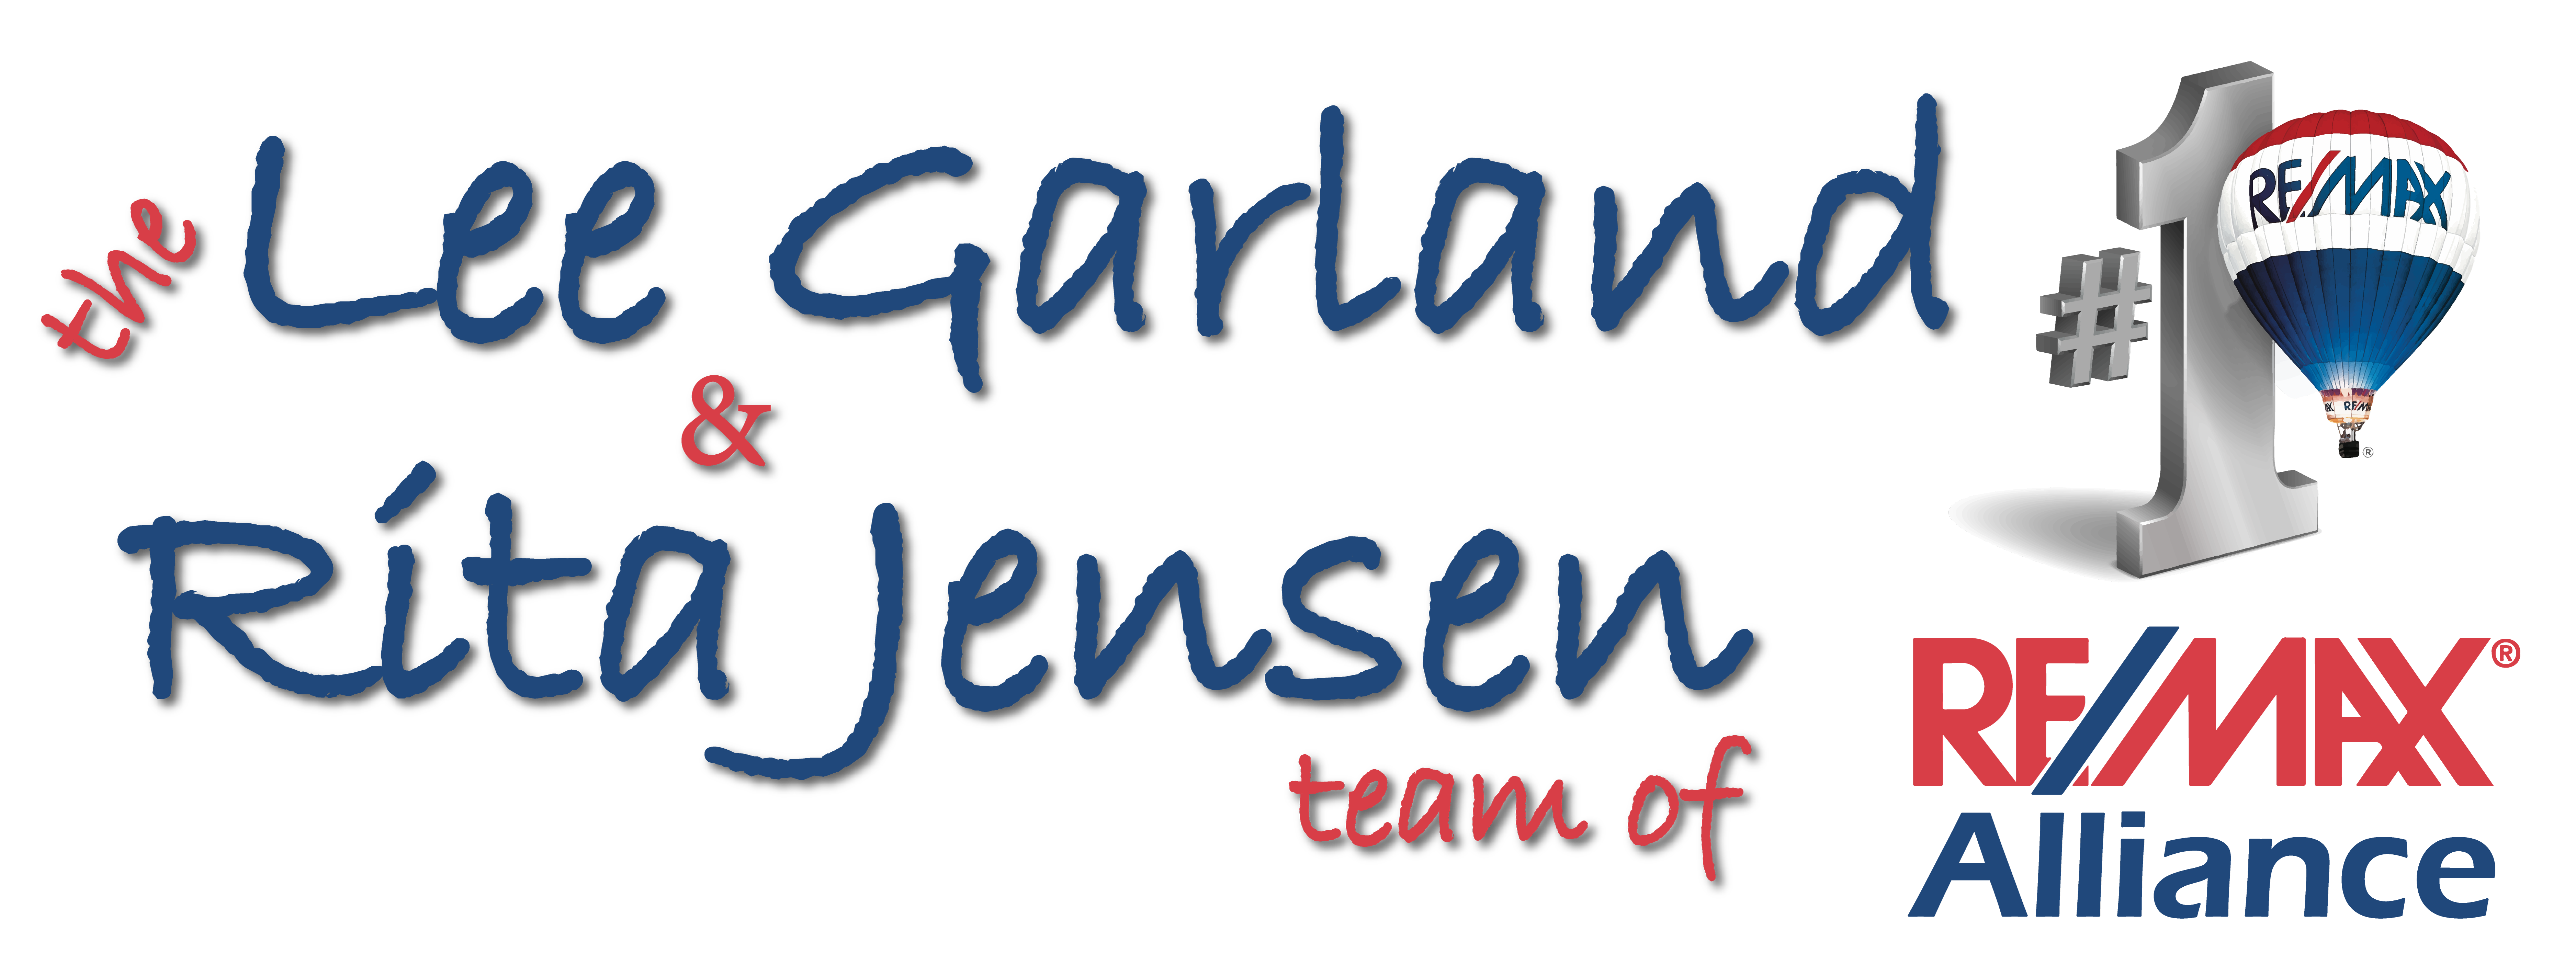 The Lee Garland & Rita Jensen Team logo